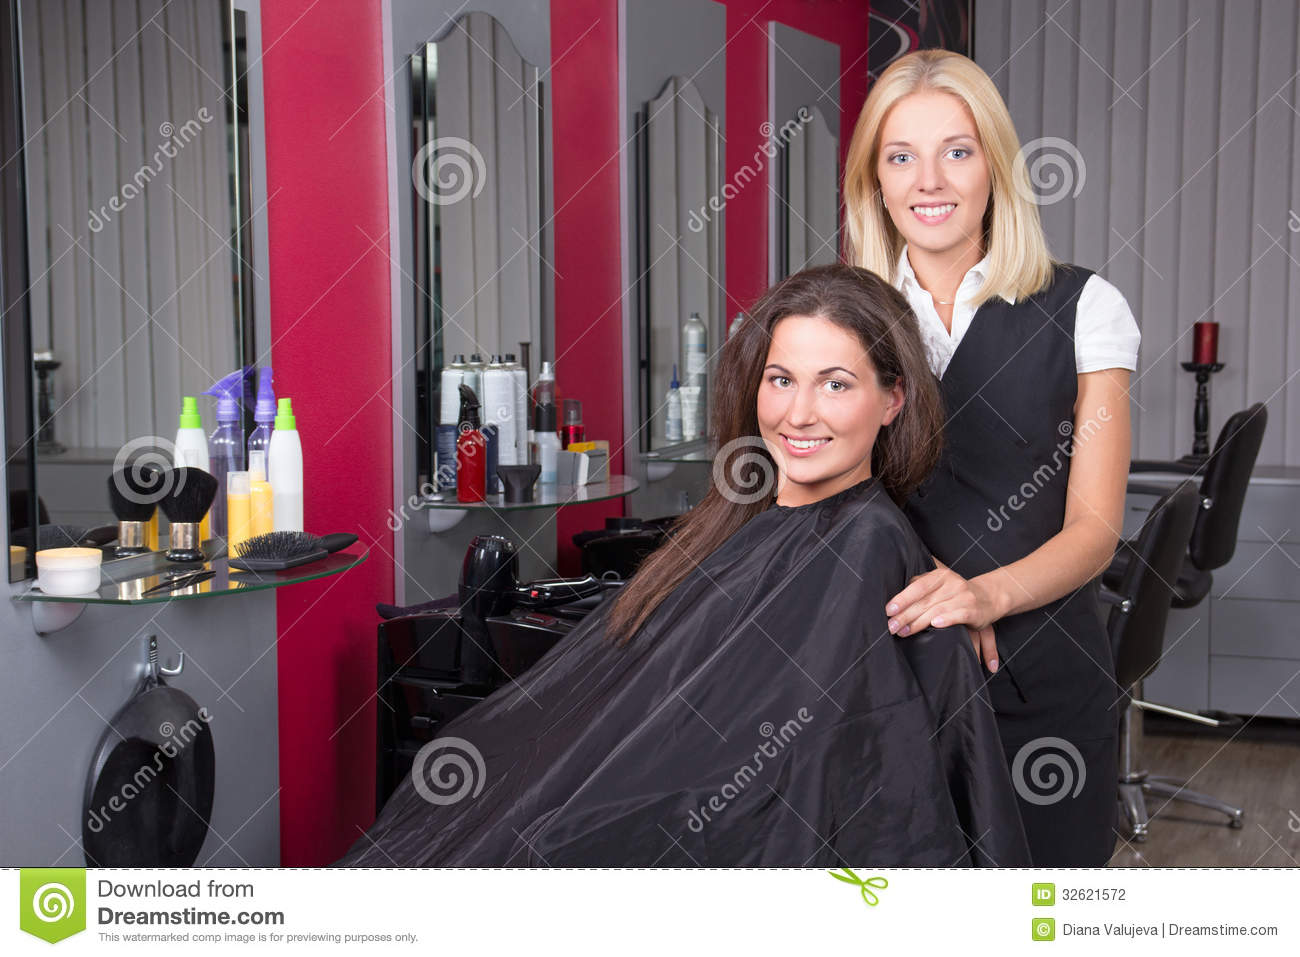 Happy Woman In Beauty Salon Getting A Hair Cut Stock Photo - Image